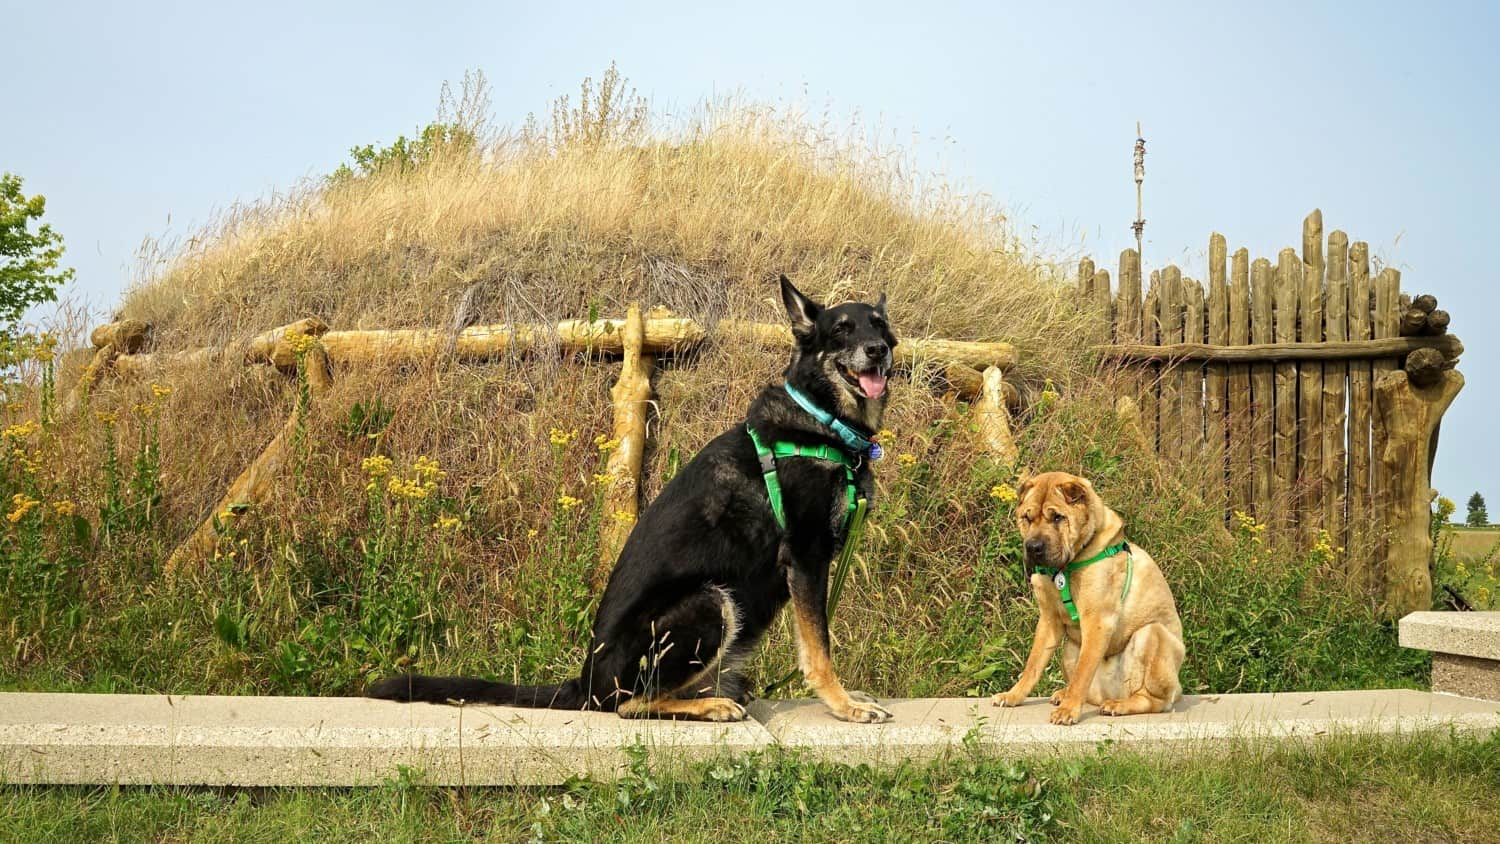 North Dakota's Top Pet Friendly Attraction: Knife River Indian Villages | GoPetFriendly.com